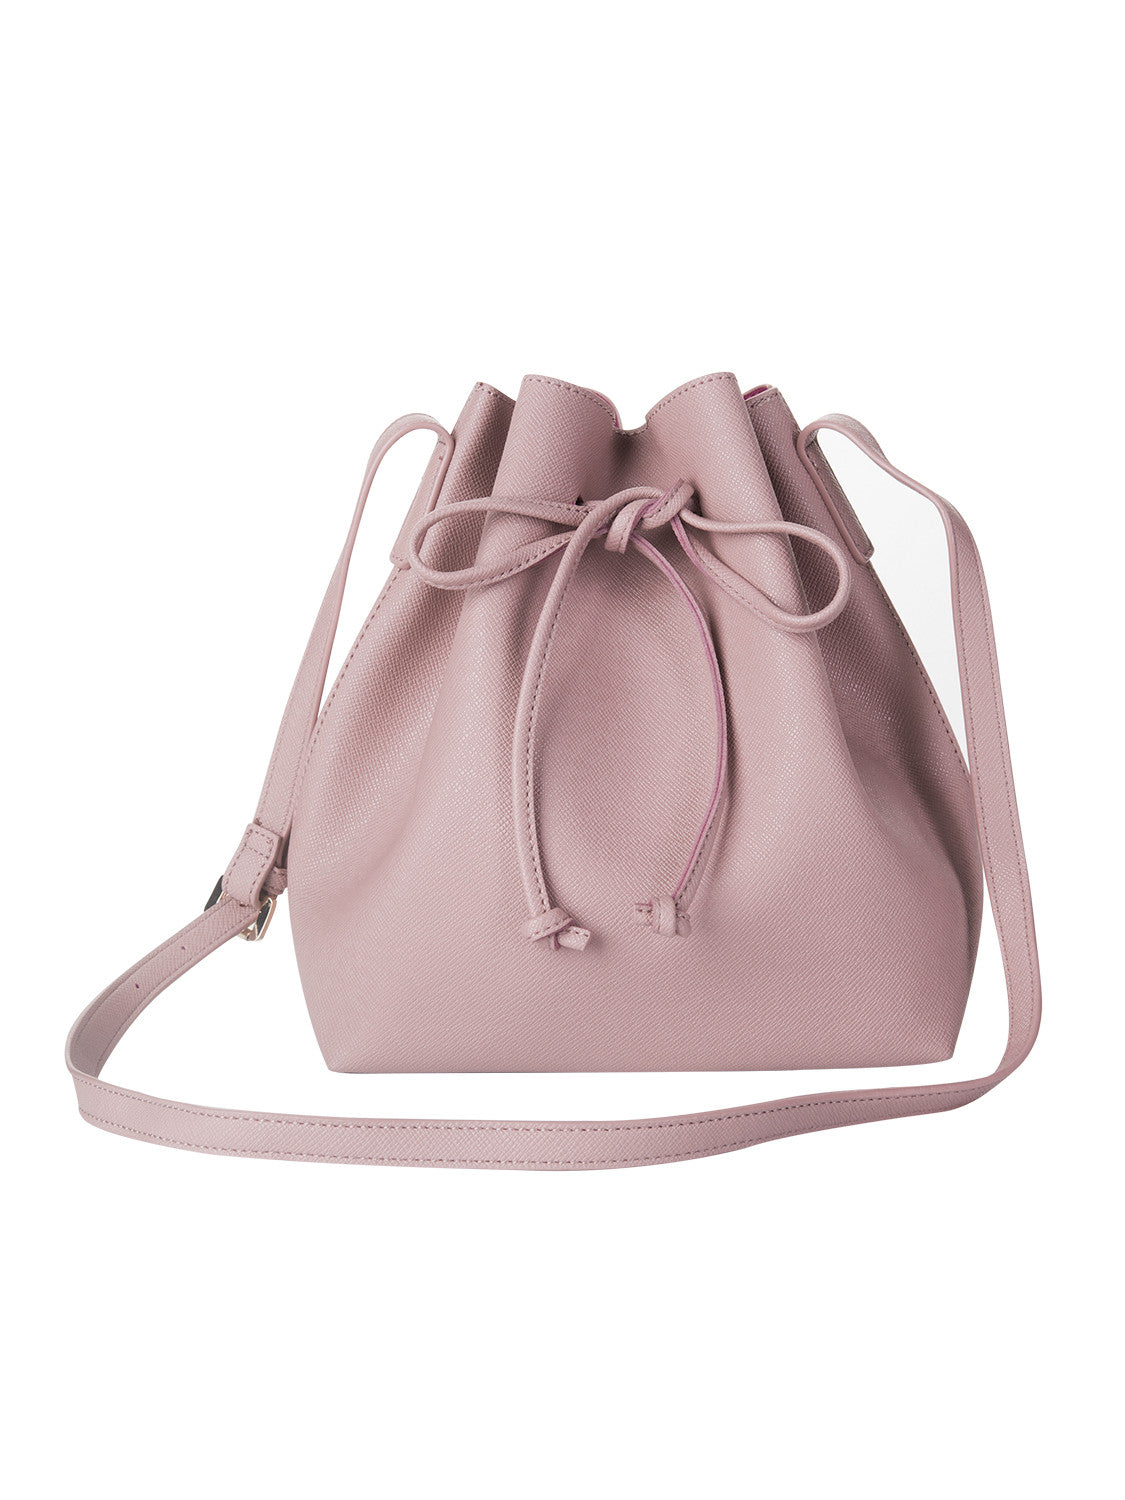 Peach Pink Drawstring Detail PU Bucket Bag - MYNYstyle - 1